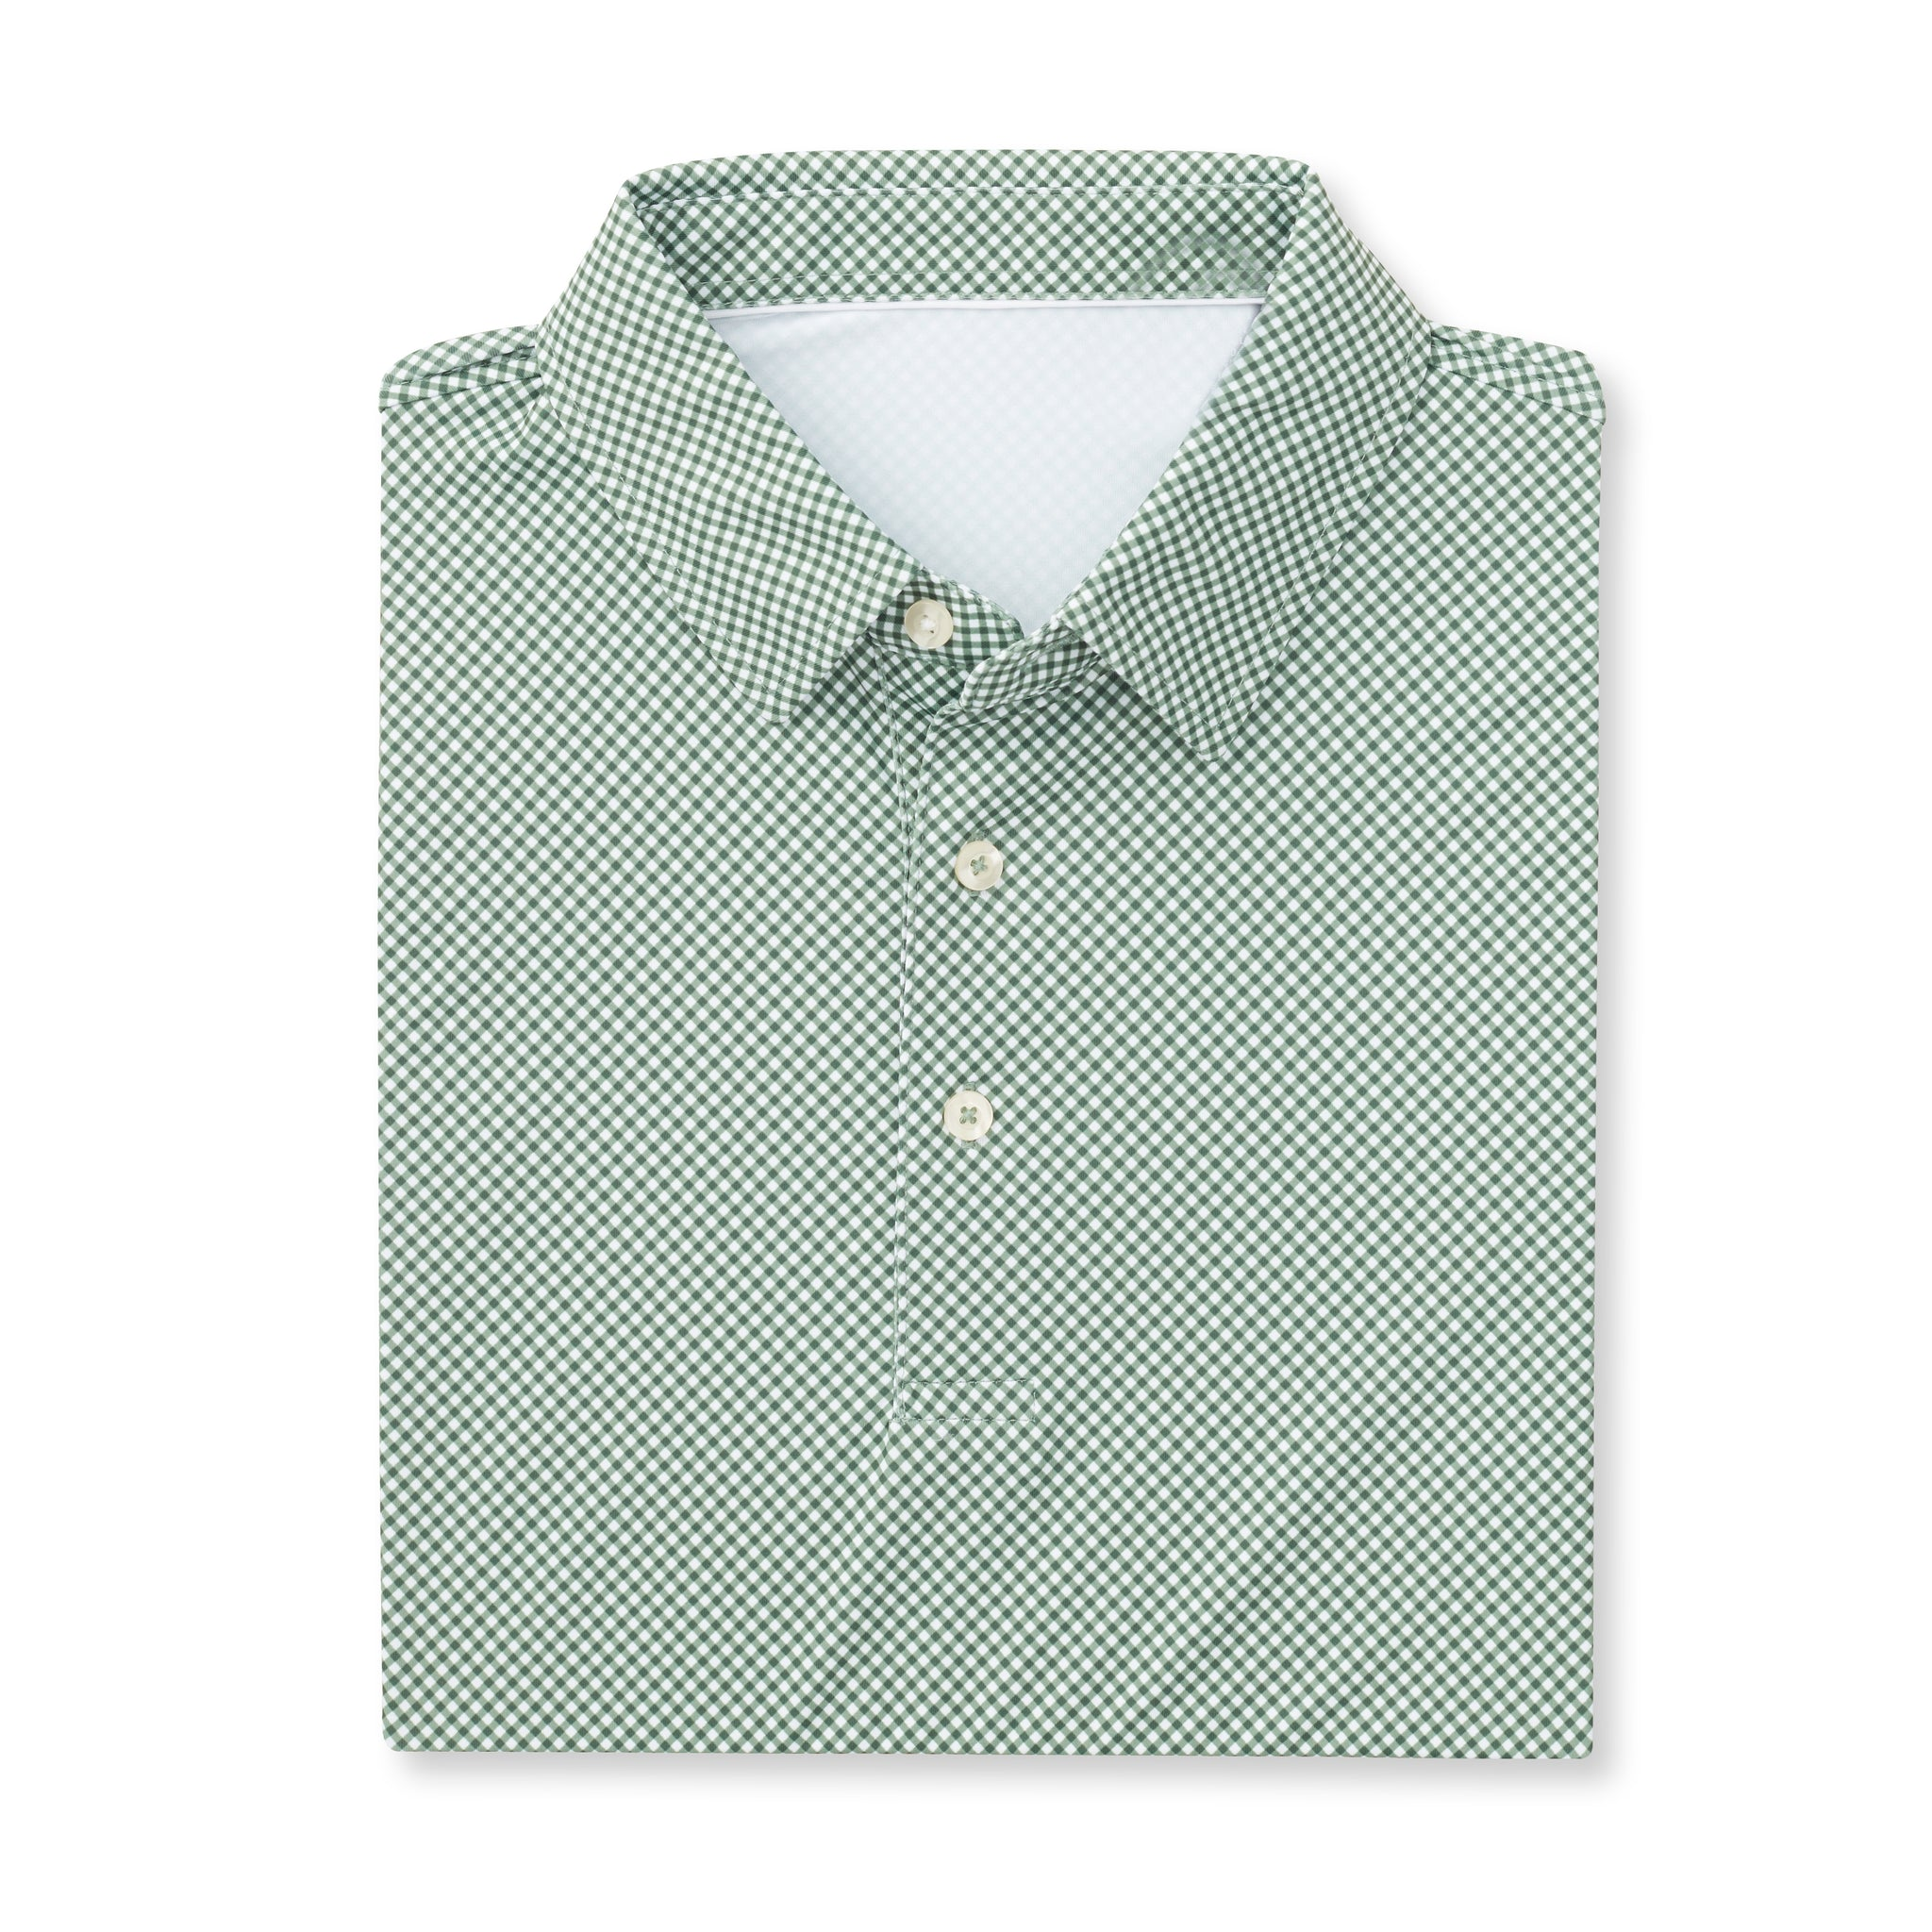 THE VINEYARD GINGHAM POLO - Pine IS76801